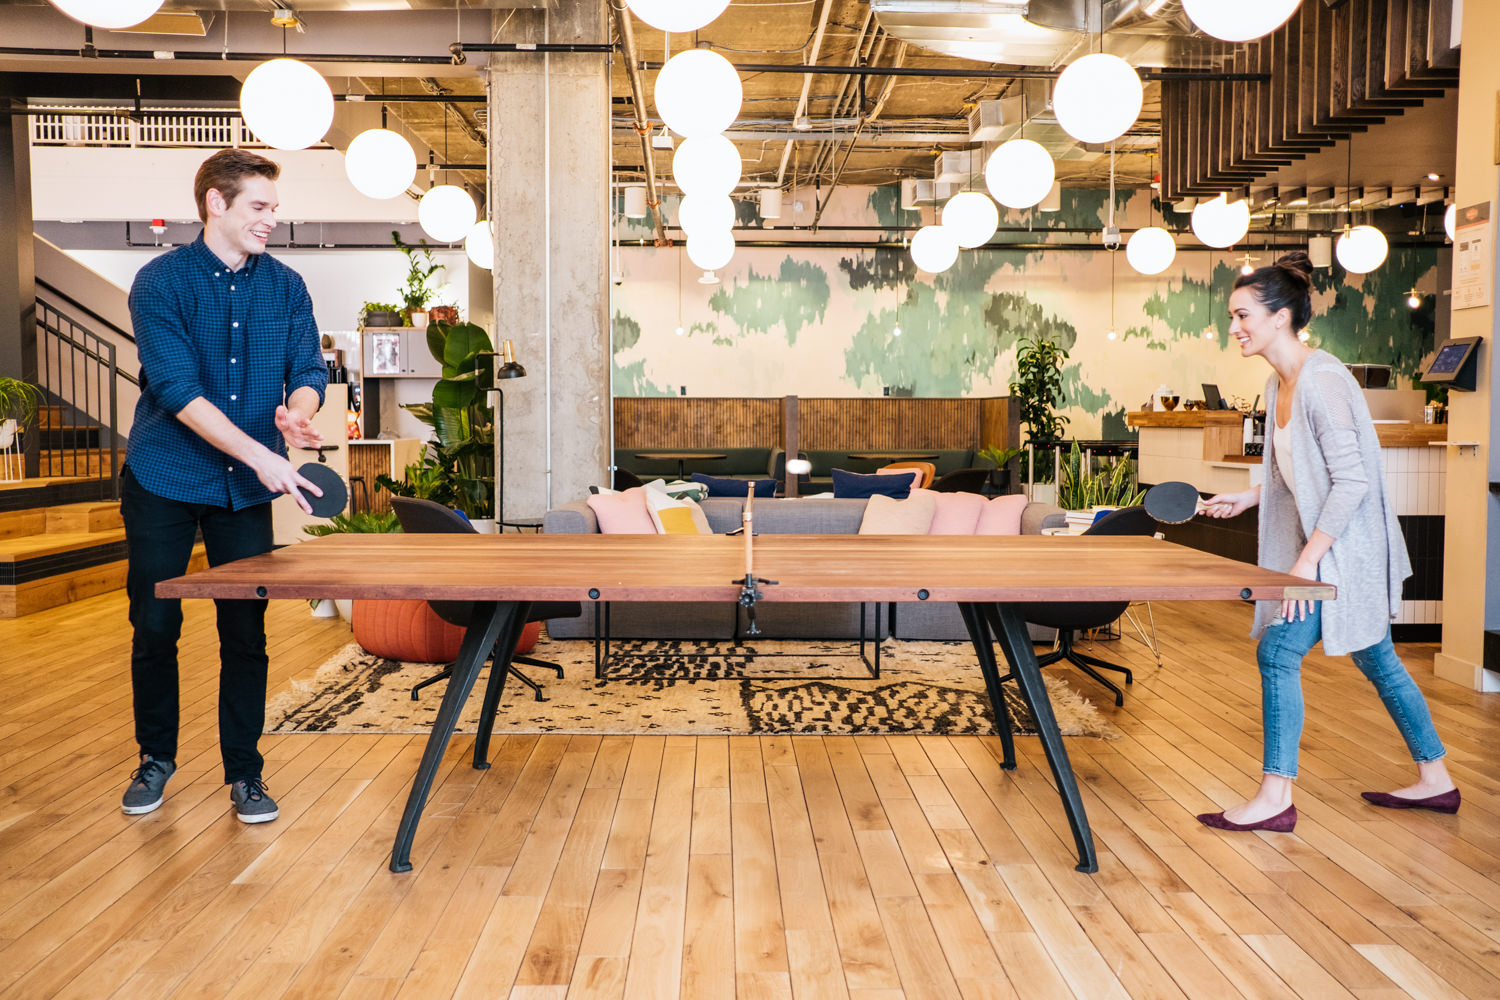 Photoguzman_WeWork_Commercial_Photography_R_web-10.jpg